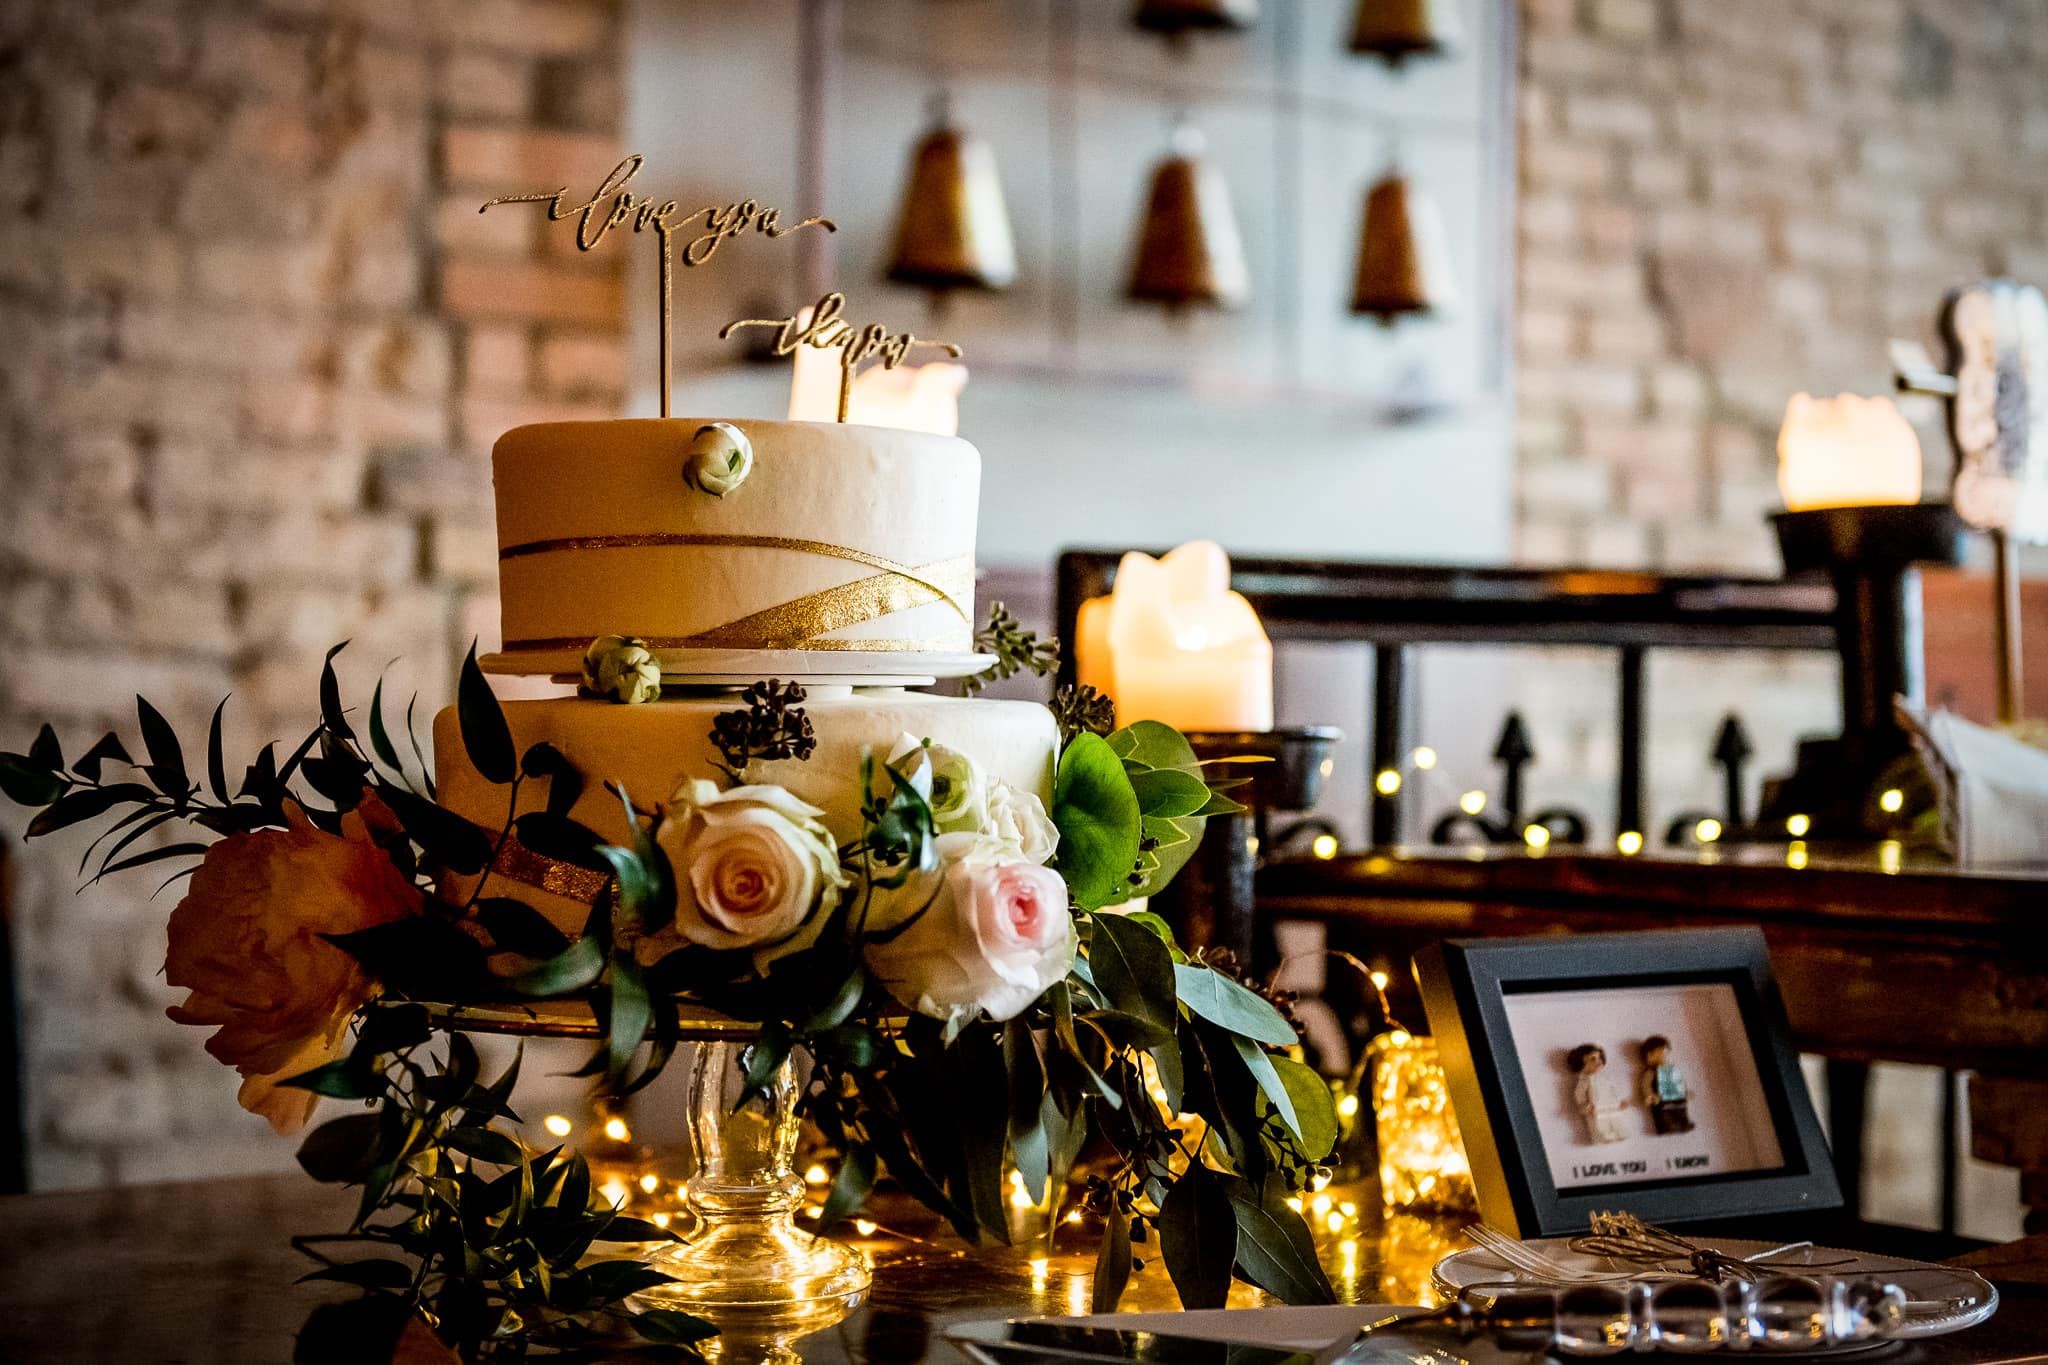 Aster Cafe Wedding Cake 2